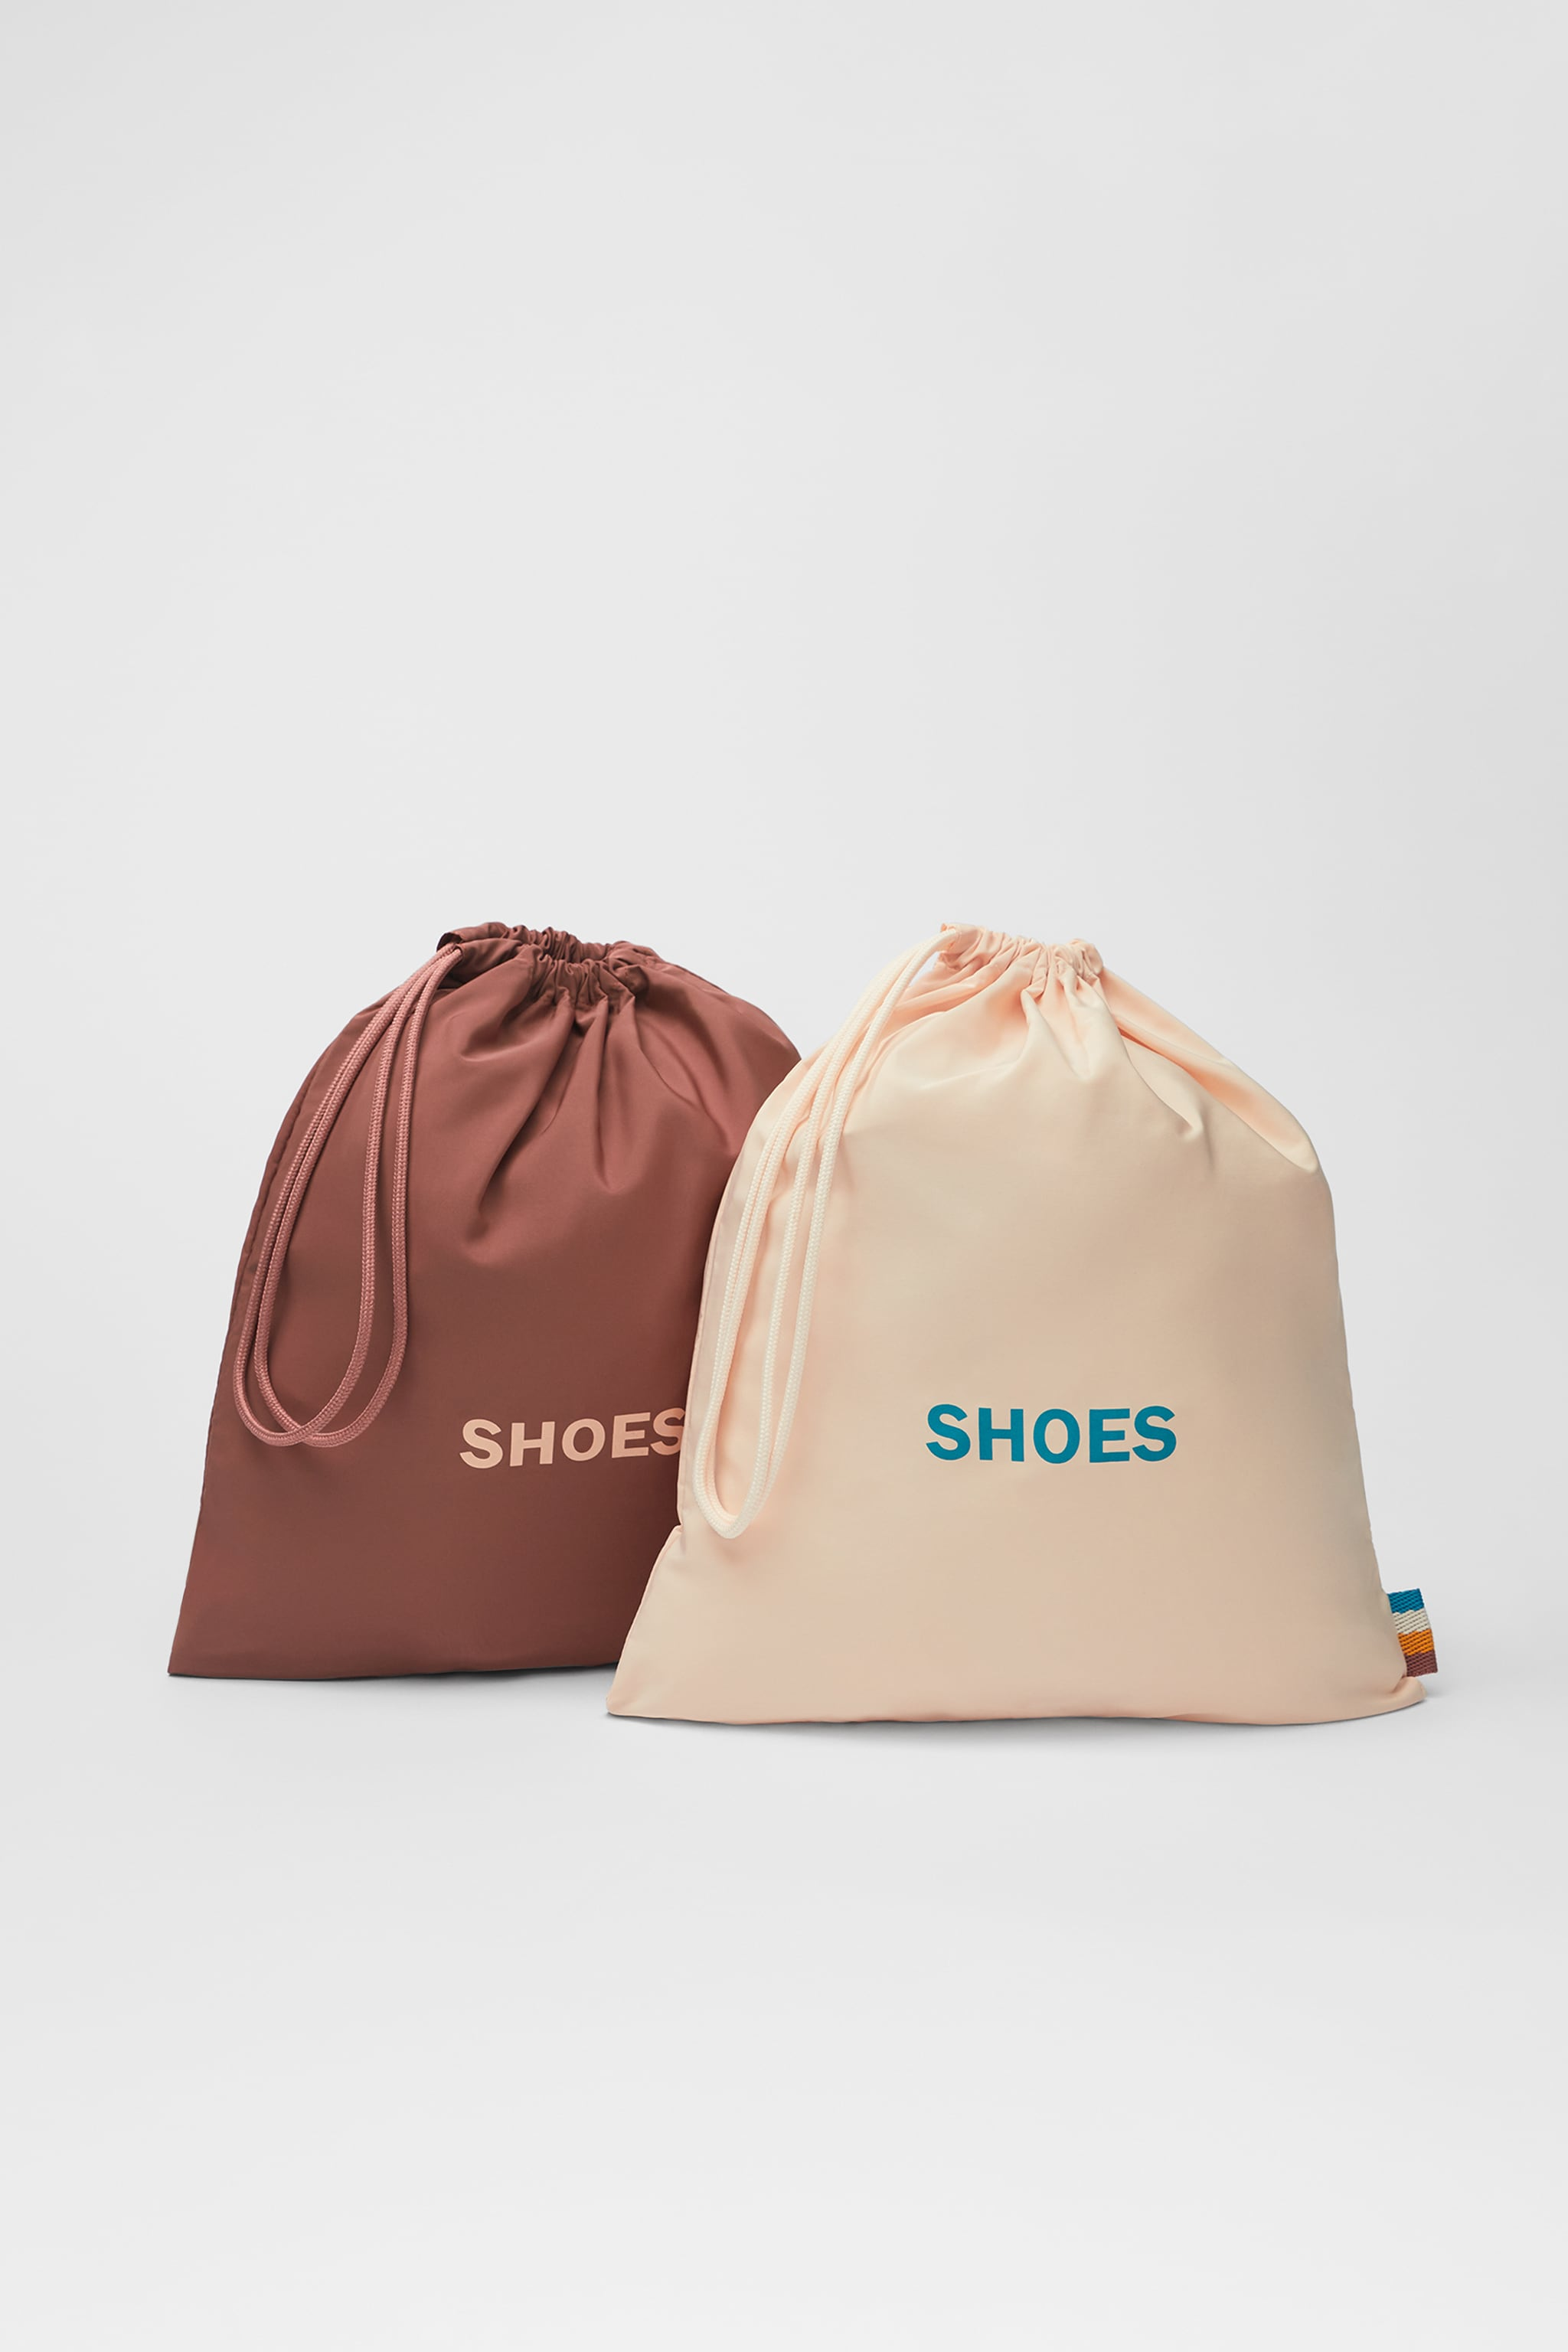 Zara TWO PACK OF SHOE TRAVEL BAGS